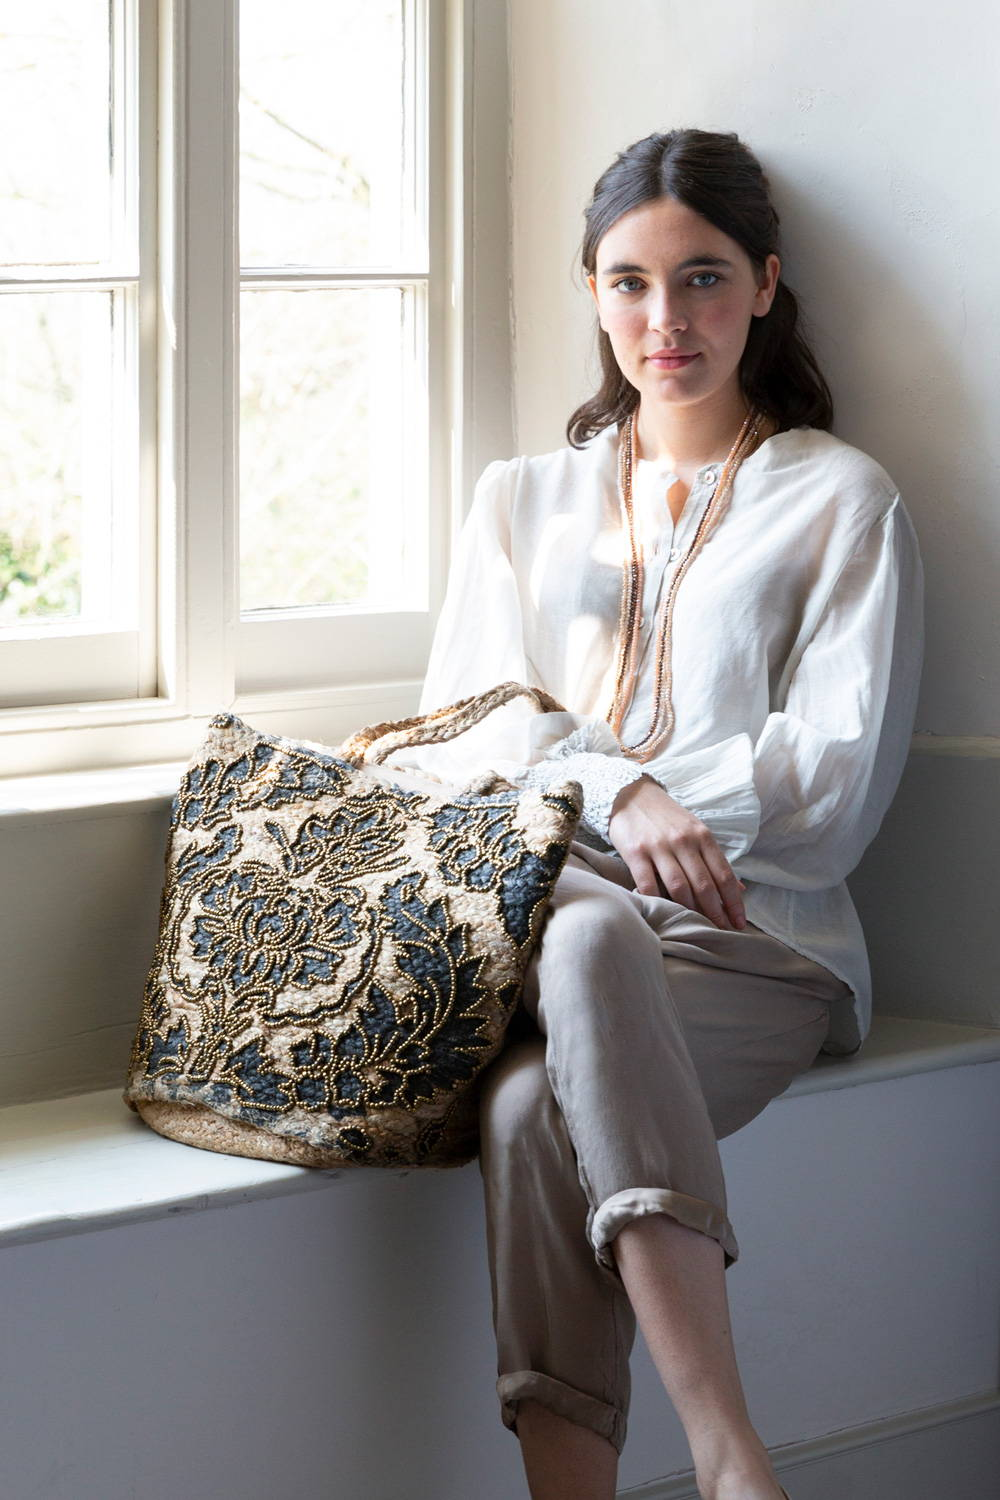 Model wearing silk blouse, crystal necklaces and a beaded straw tote bag.